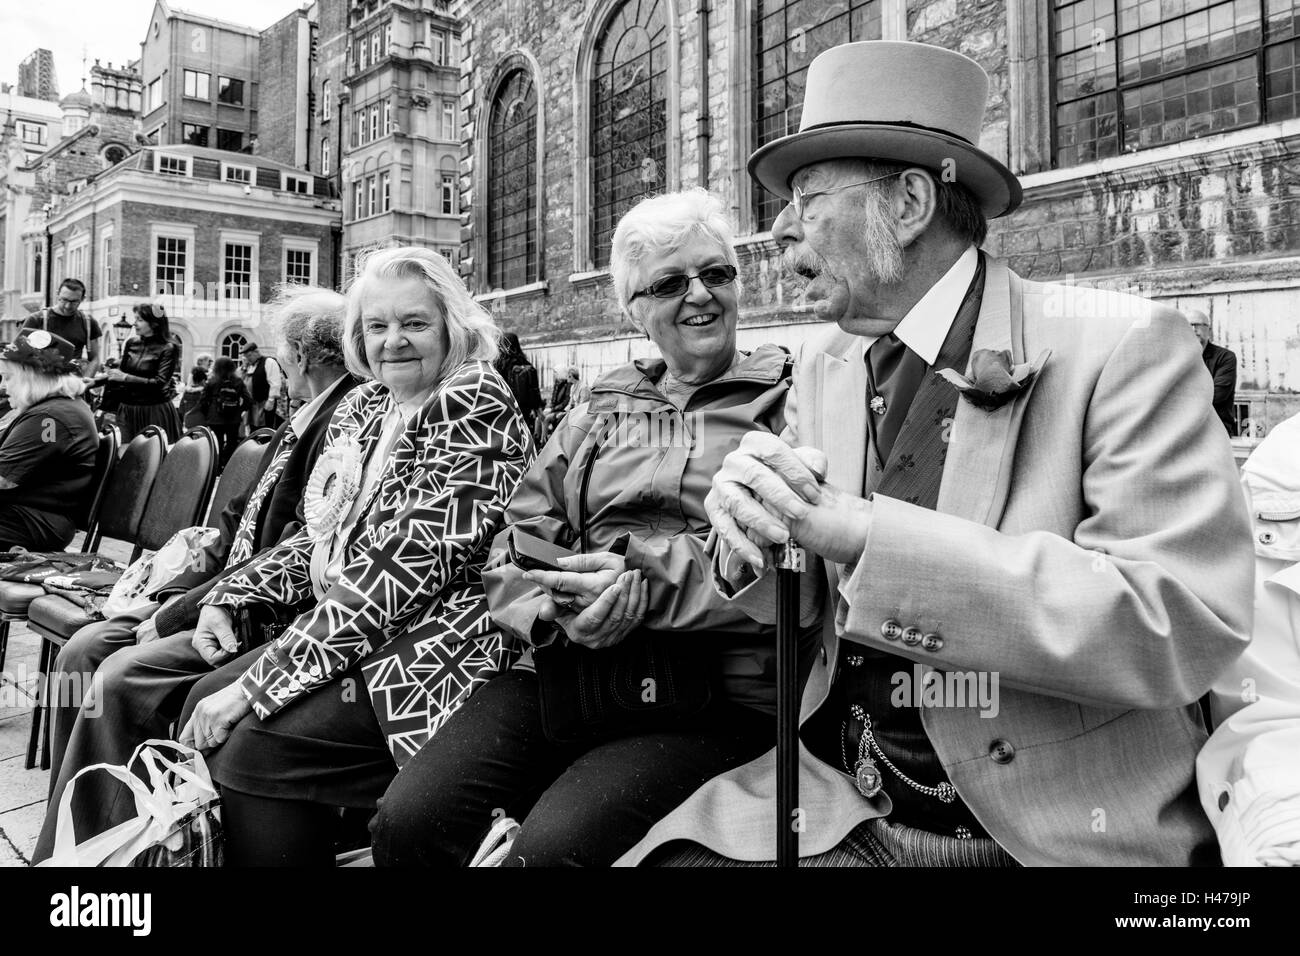 People In Costume Take Part In The Pearly Kings and Queens' Harvest Festival, The Guildhall Yard, London, England - Stock Image